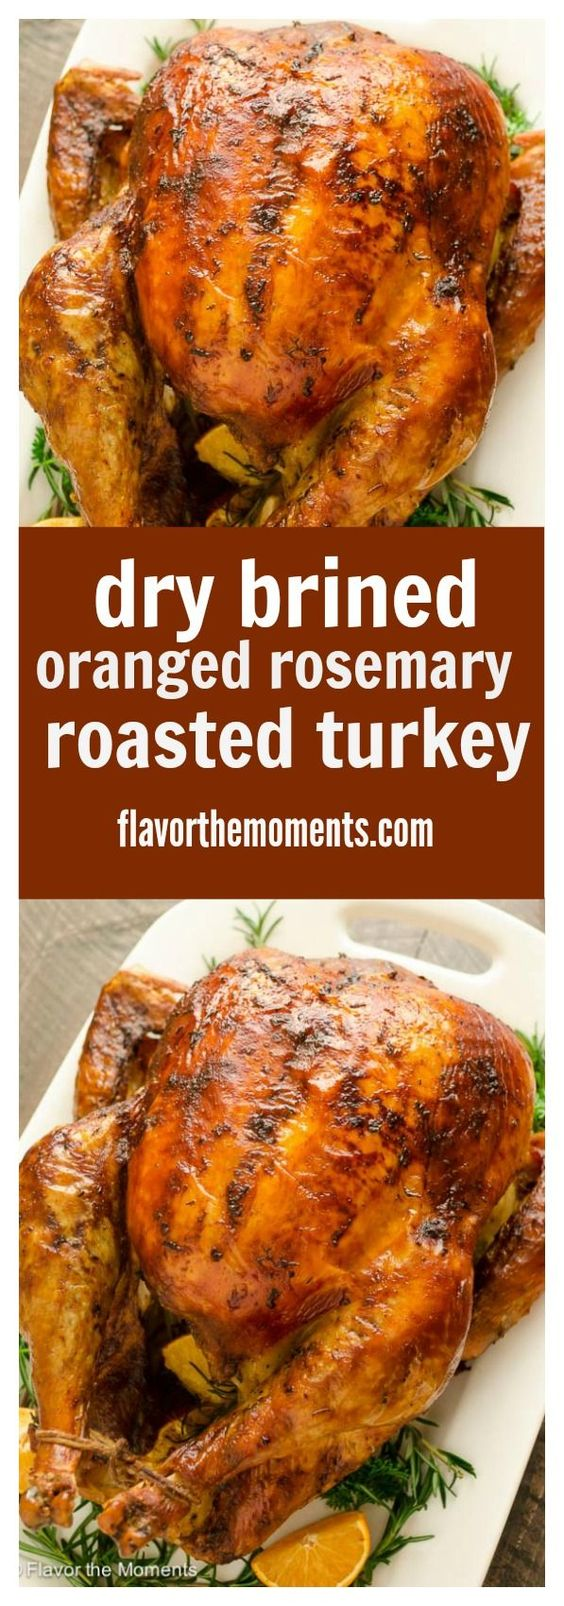 27 Delicious Turkey Recipes You Need to Try This Thanksgiving Season 14 #cookymom